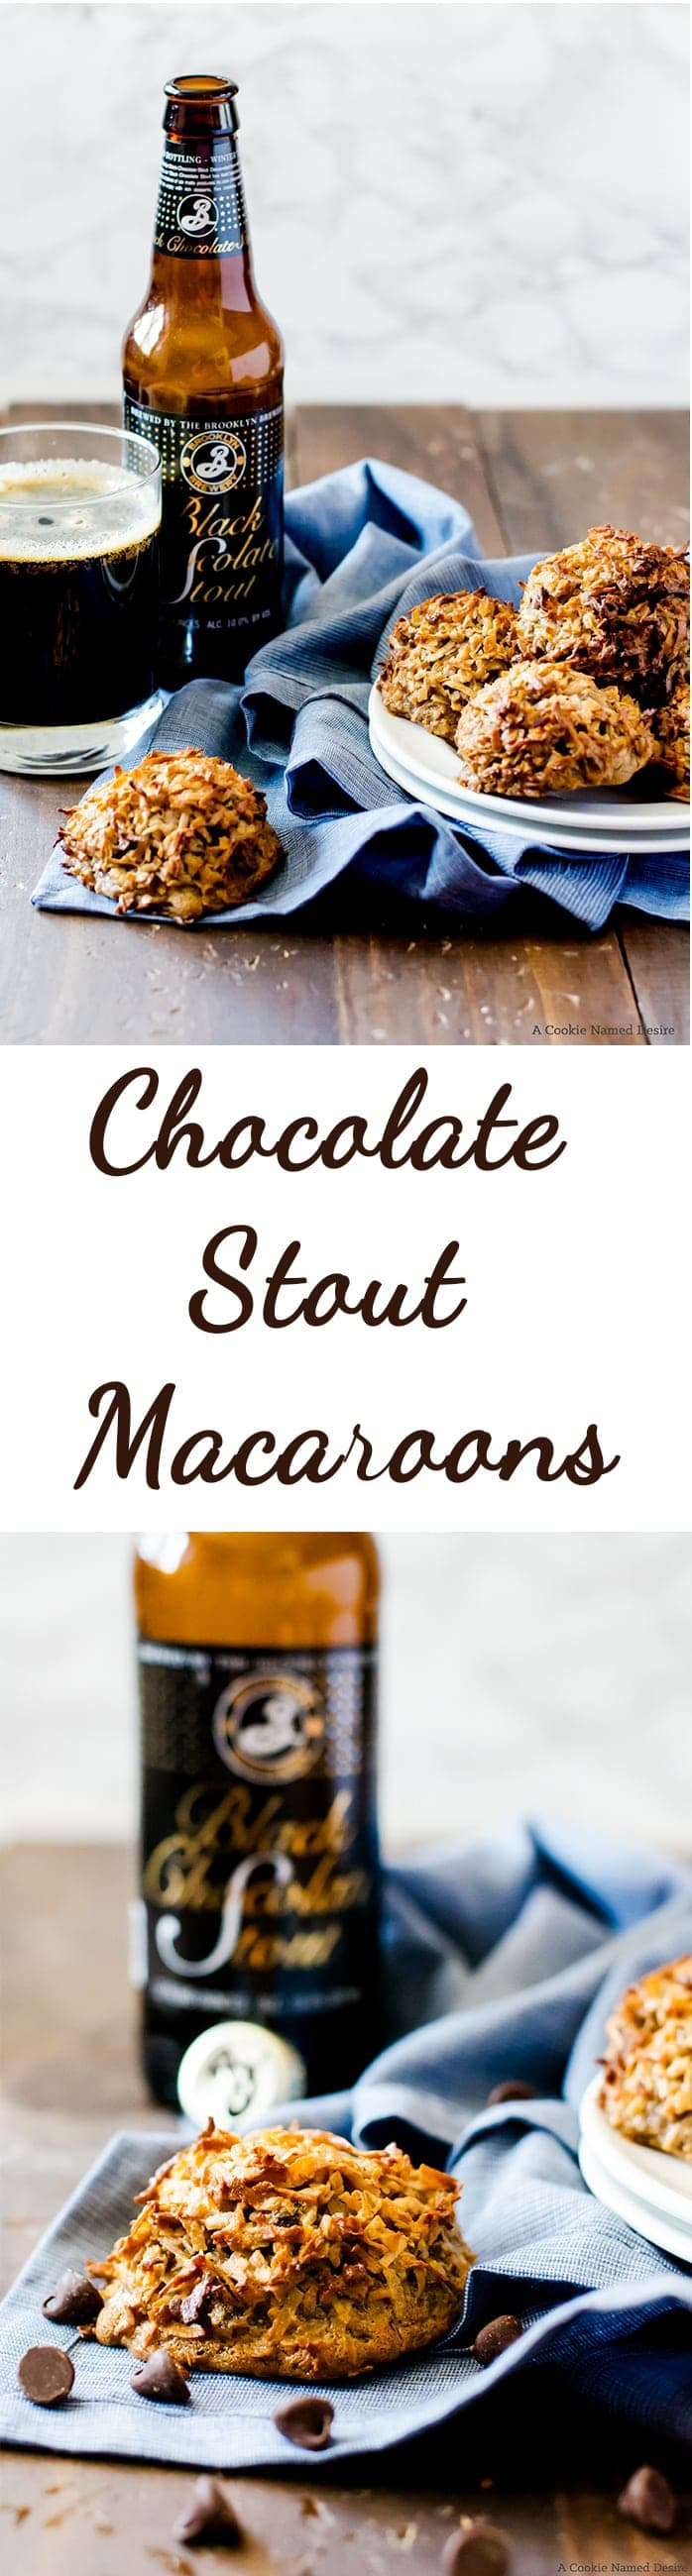 Chocolate stout macaroons are a great Game Day treat everyone will love